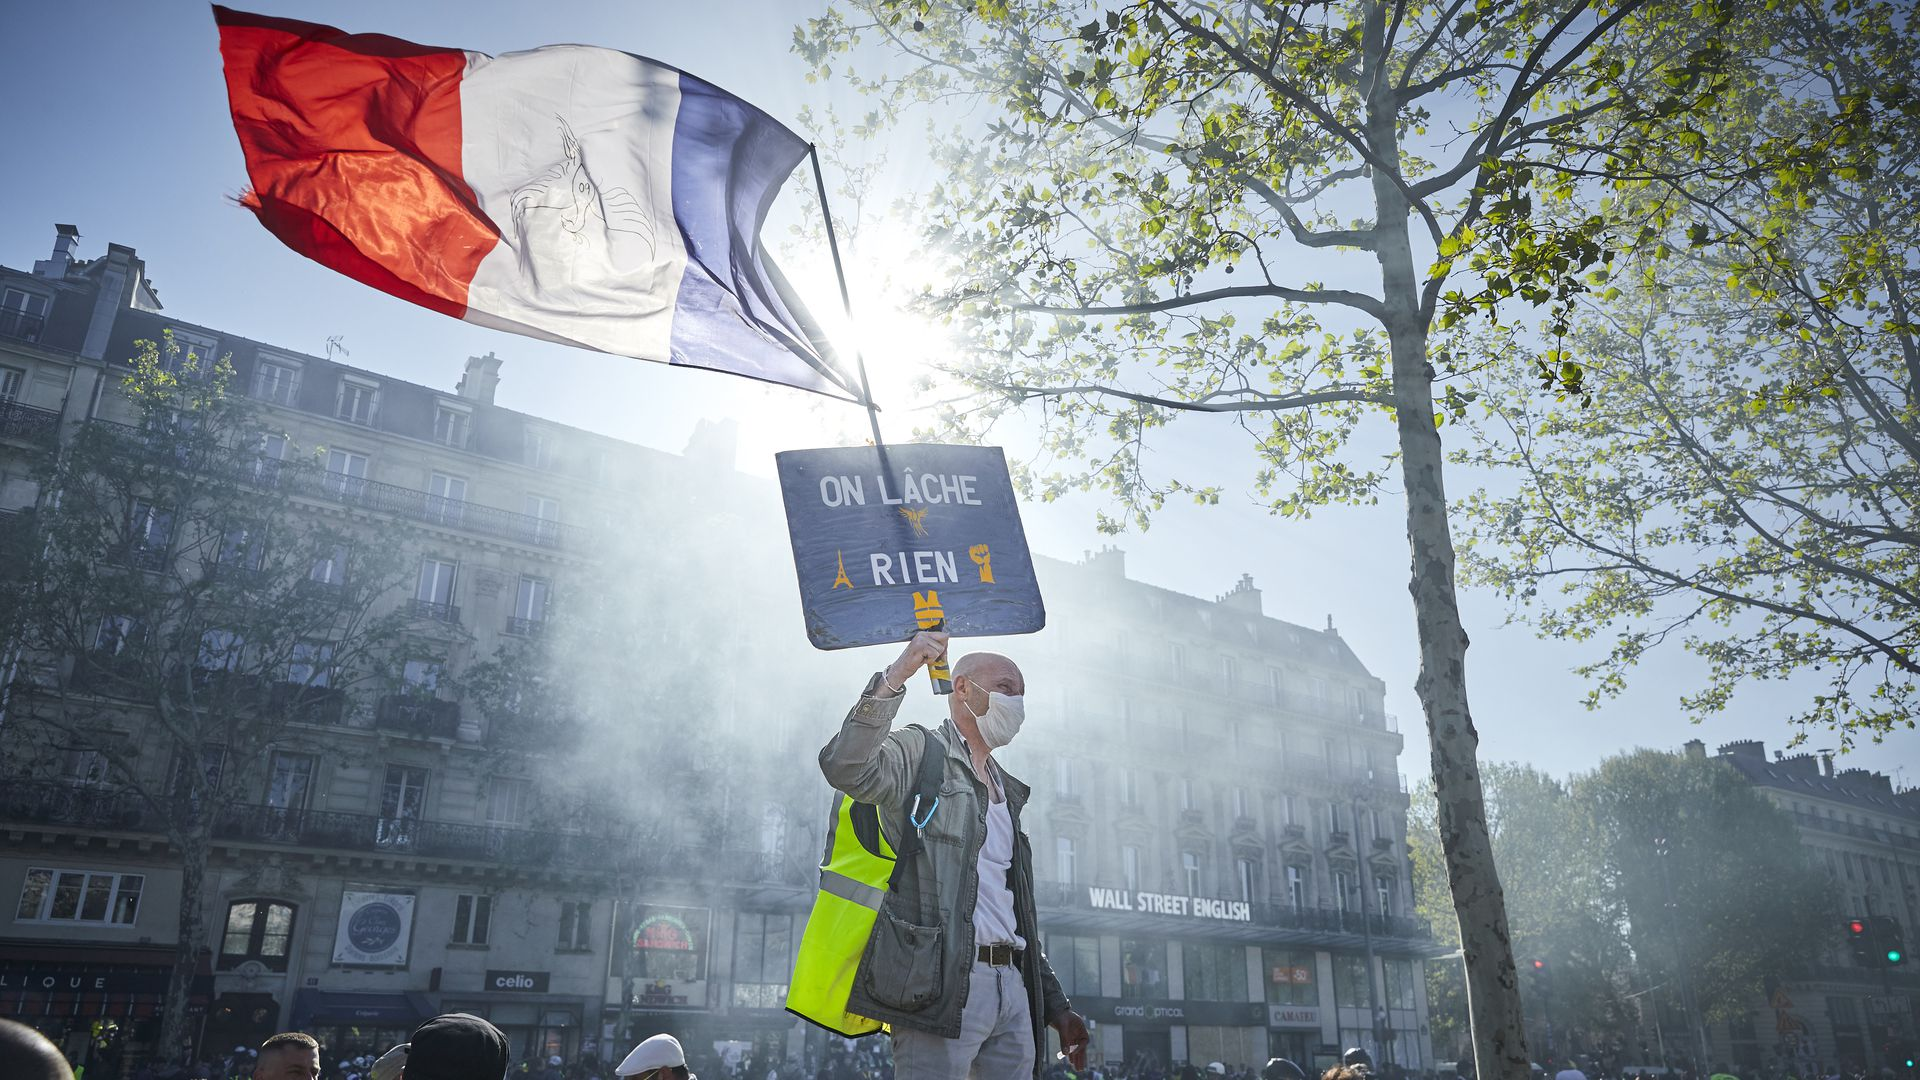 Protests engulf Paris a week after Notre Dame fire